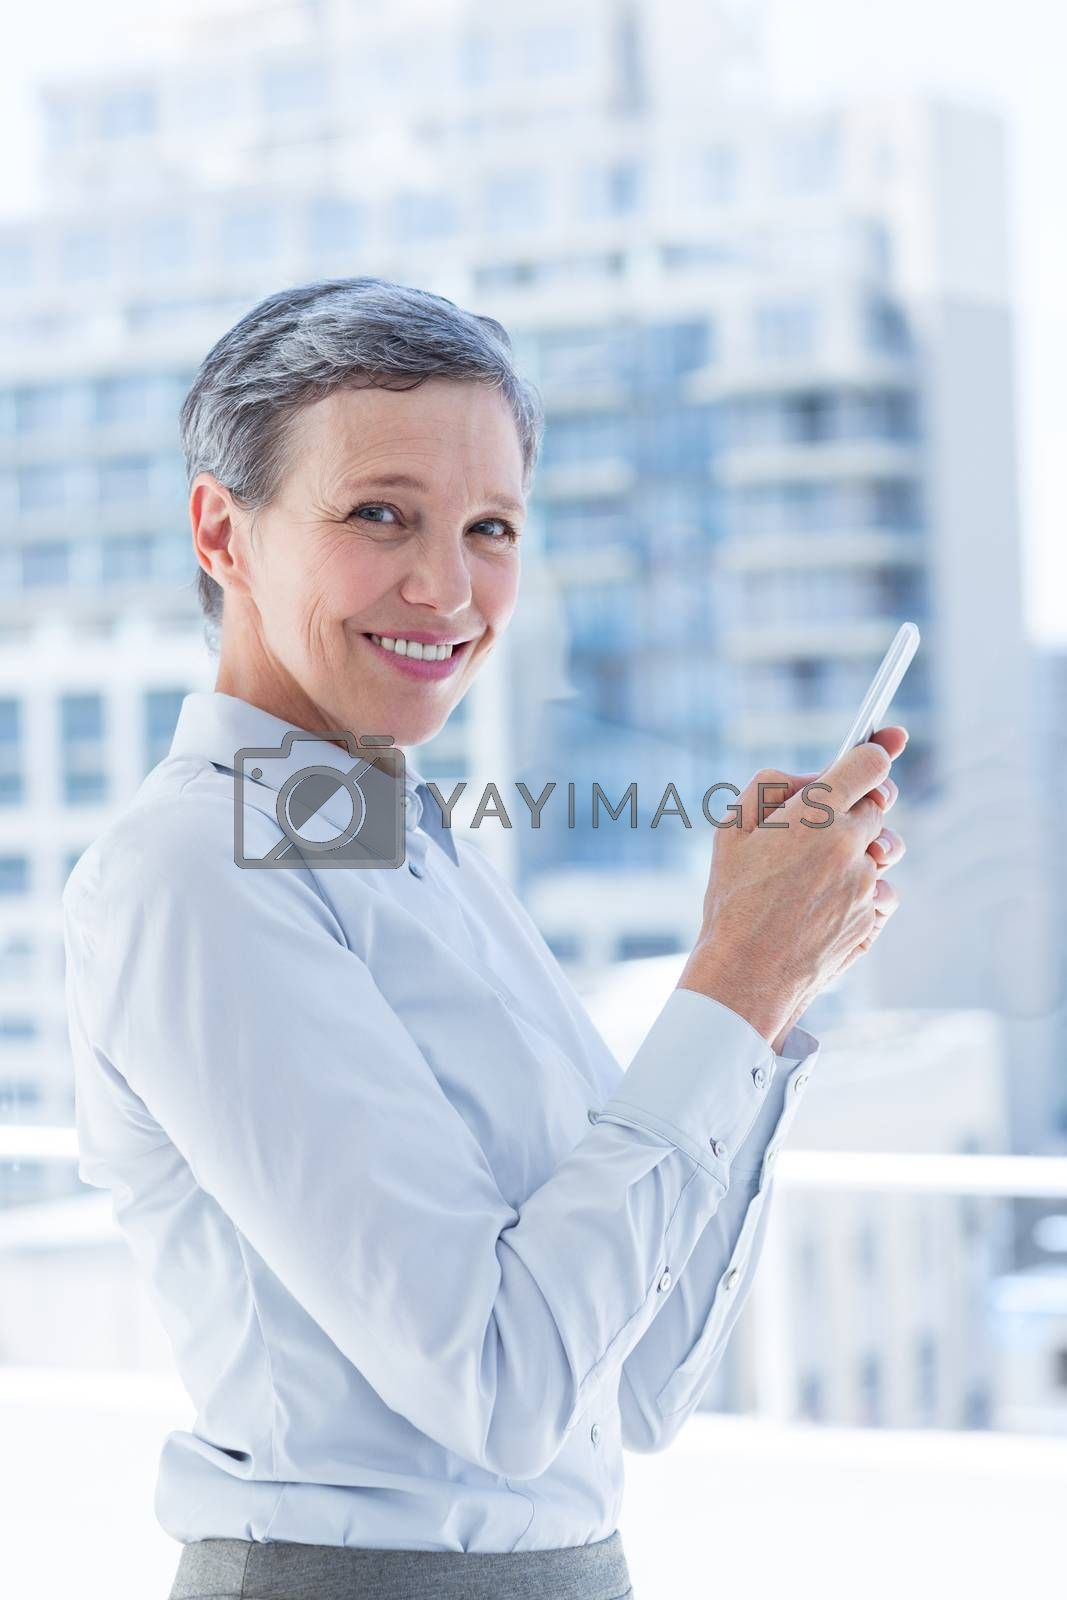 Royalty free image of Businesswoman sending a text message in the office by Wavebreakmedia